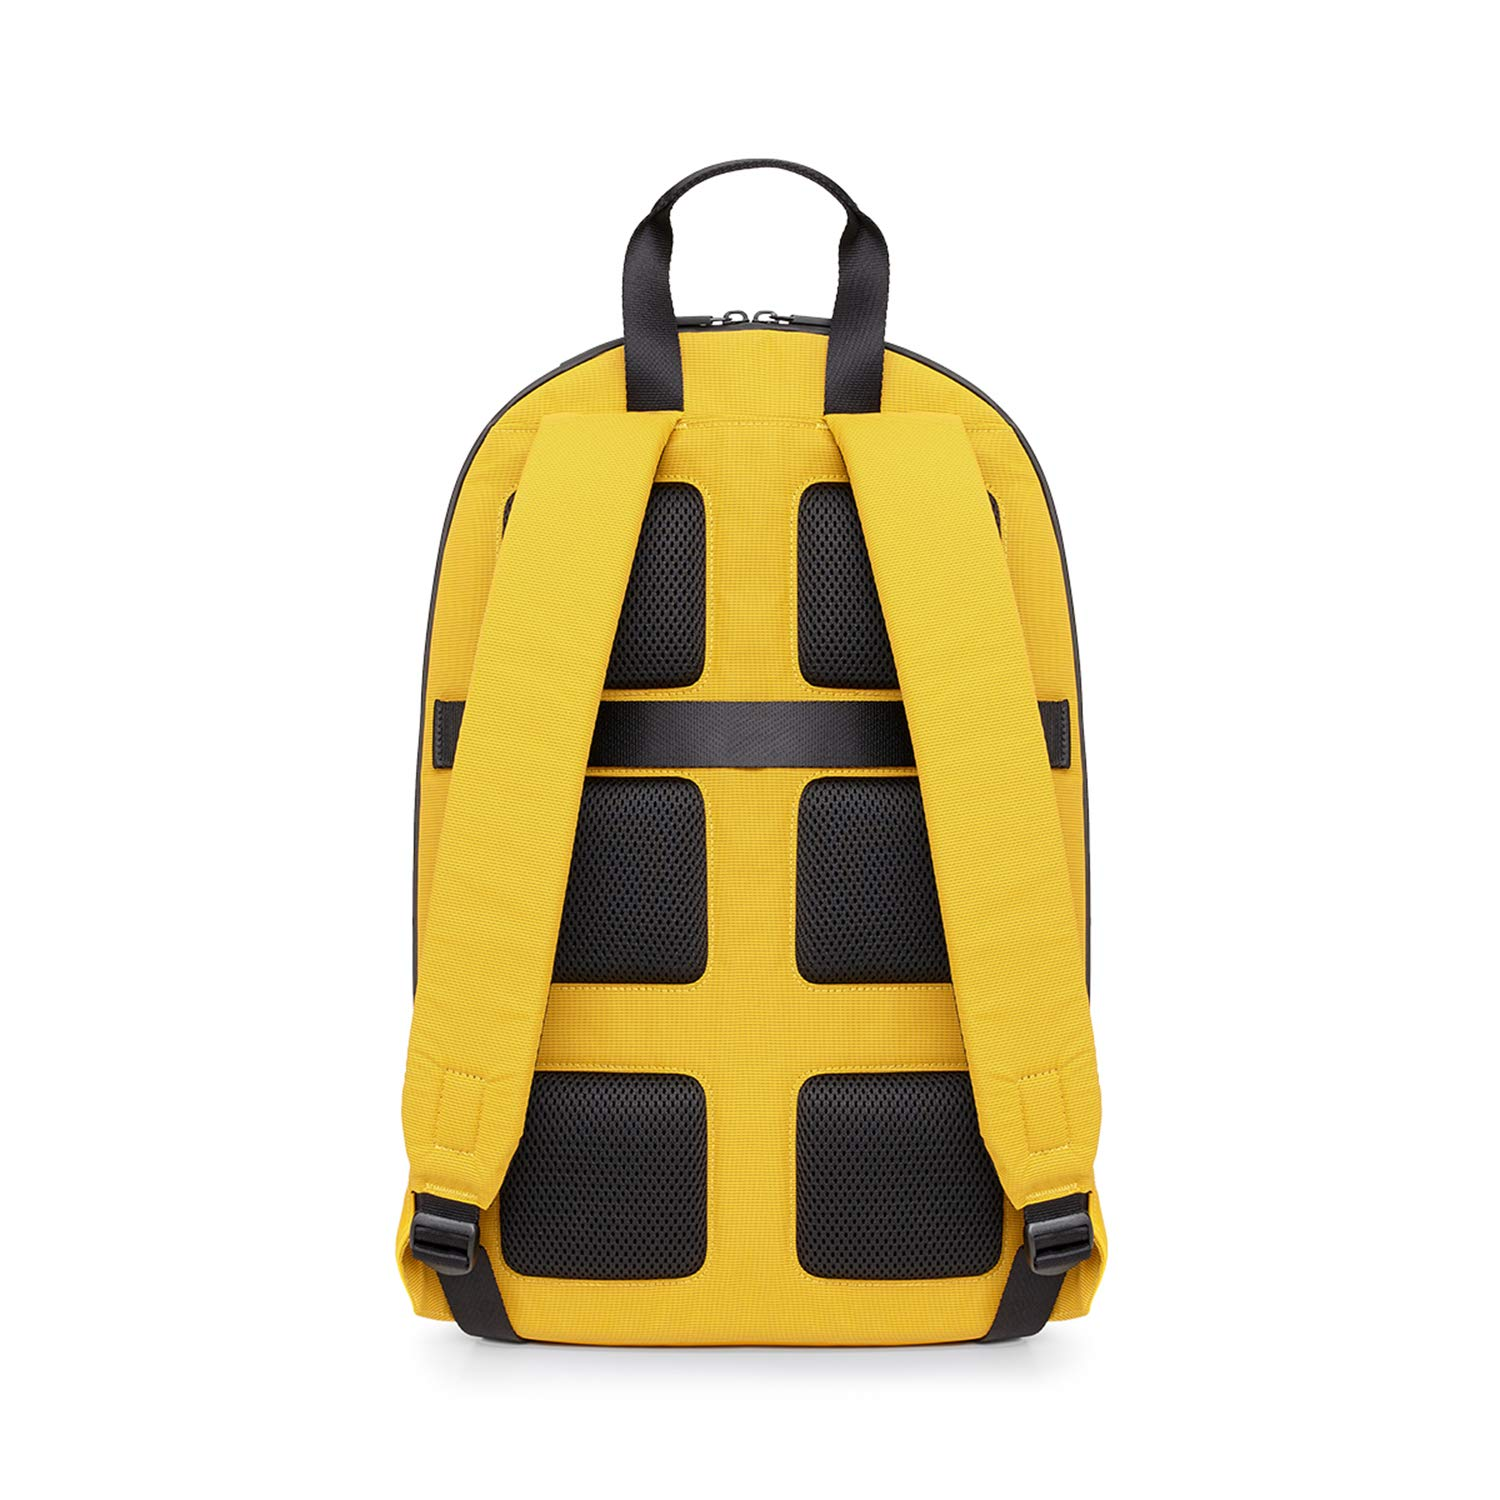 Moleskine Metro Backpack, Orange Yellow -  For Work, School, Travel & Everyday Use, Space for Devices, Tablet, Laptop, & Chargers, Notebook Planner or Organizer, Padded Adjustable Straps Secure Zipper by Moleskine (Image #2)